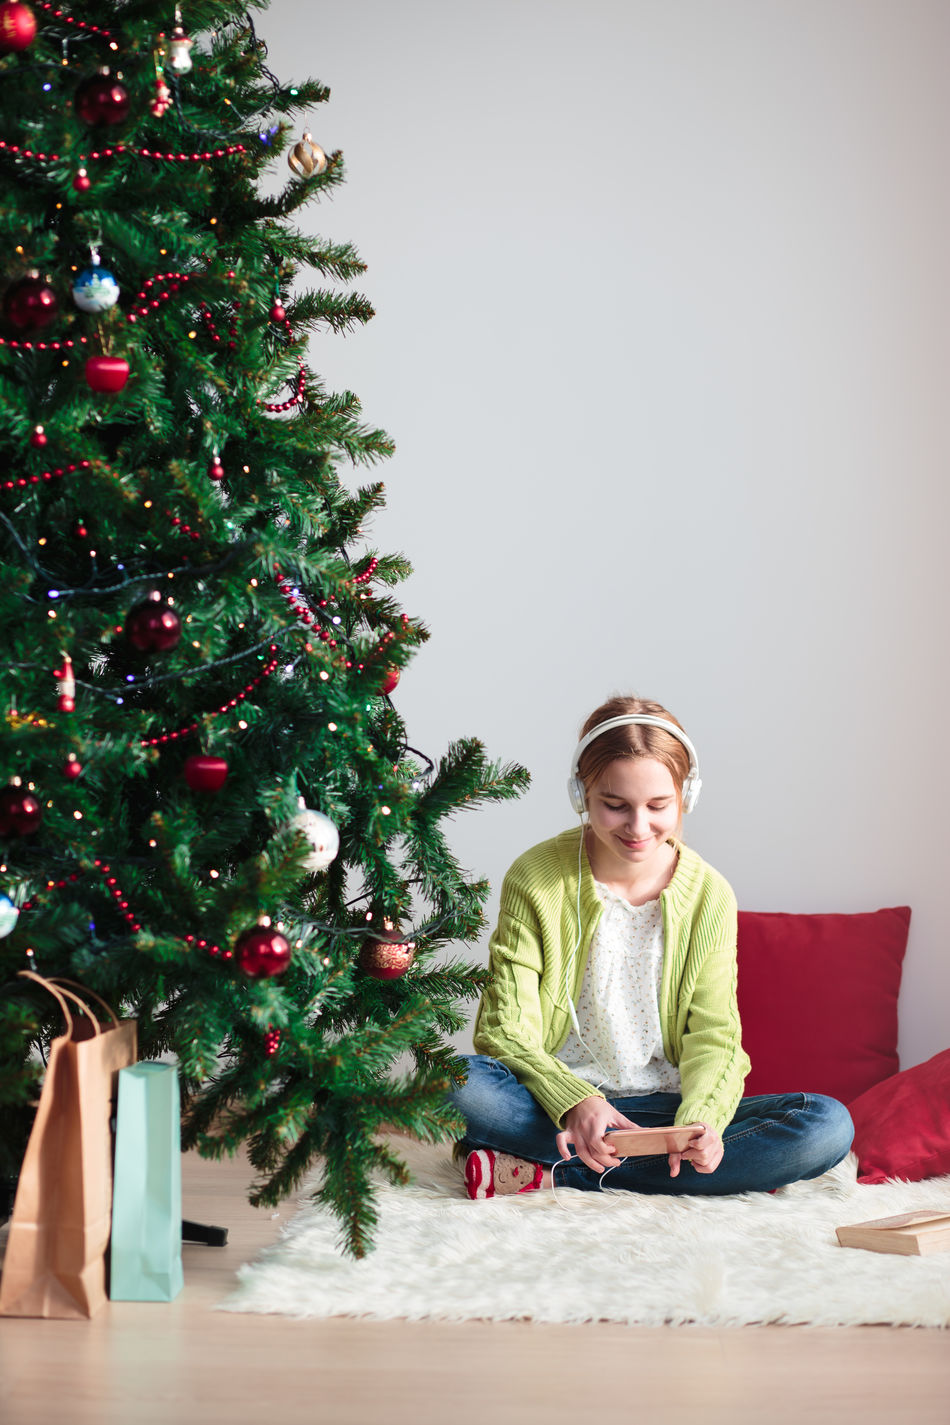 Beautiful stock photos of weihnachtsbaum,  12-13 Years,  Blanket,  Blond Hair,  Casual Clothing